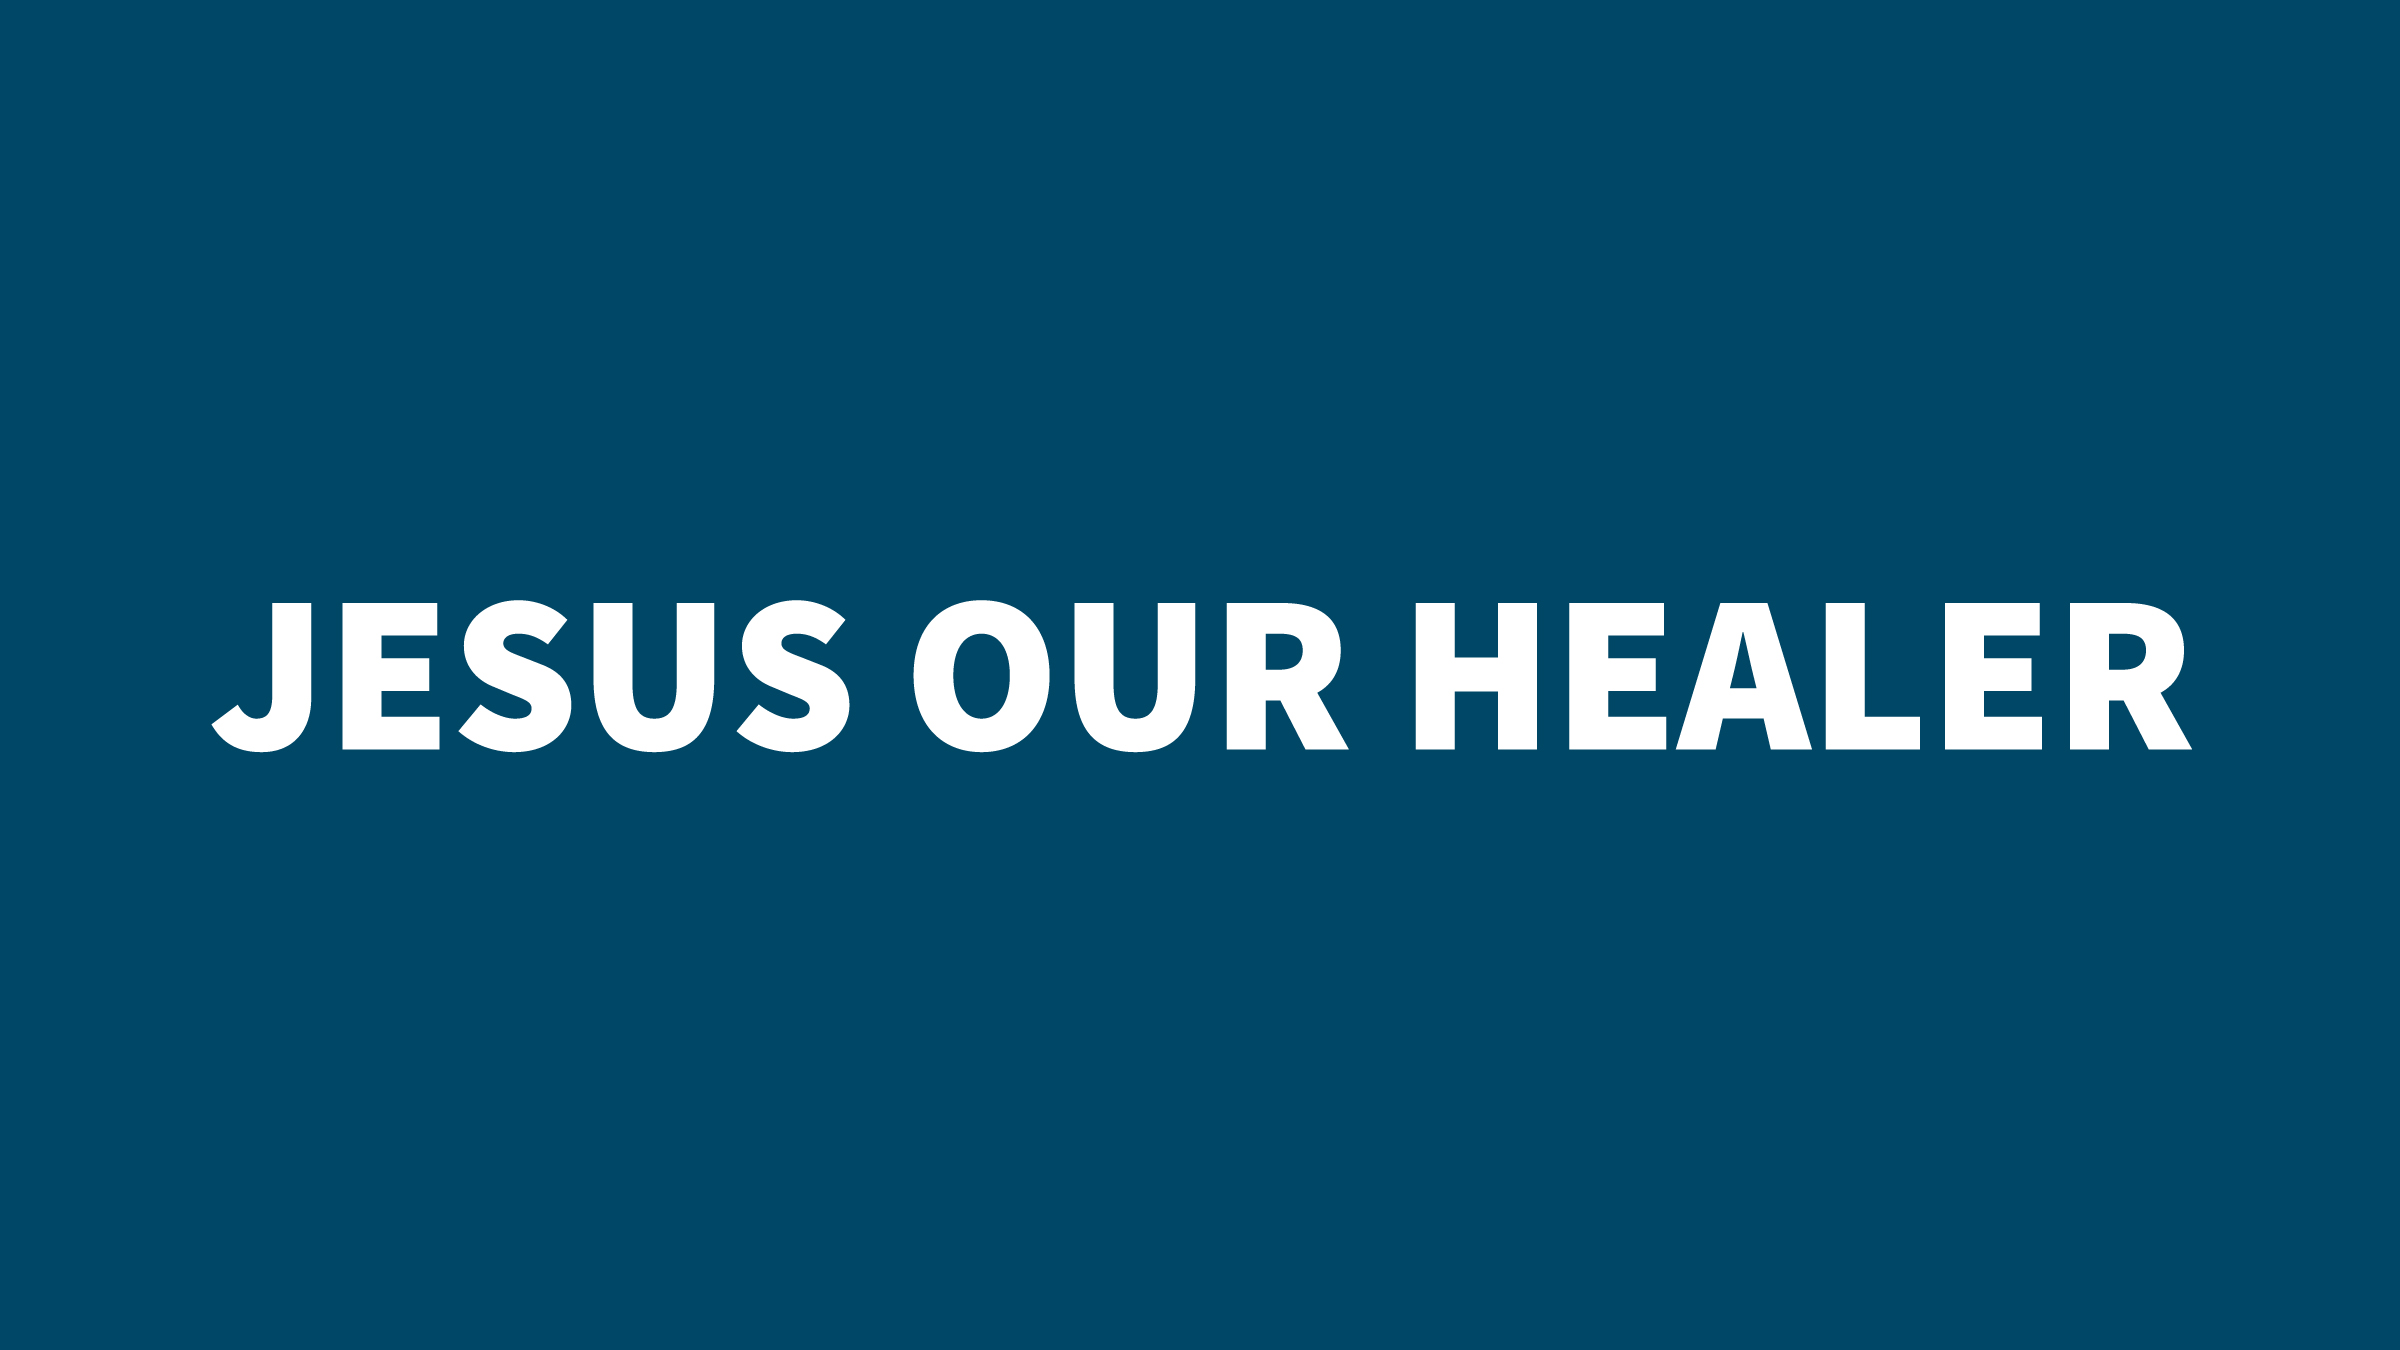 Mark 5 - Jesus our healer (blue).jpg